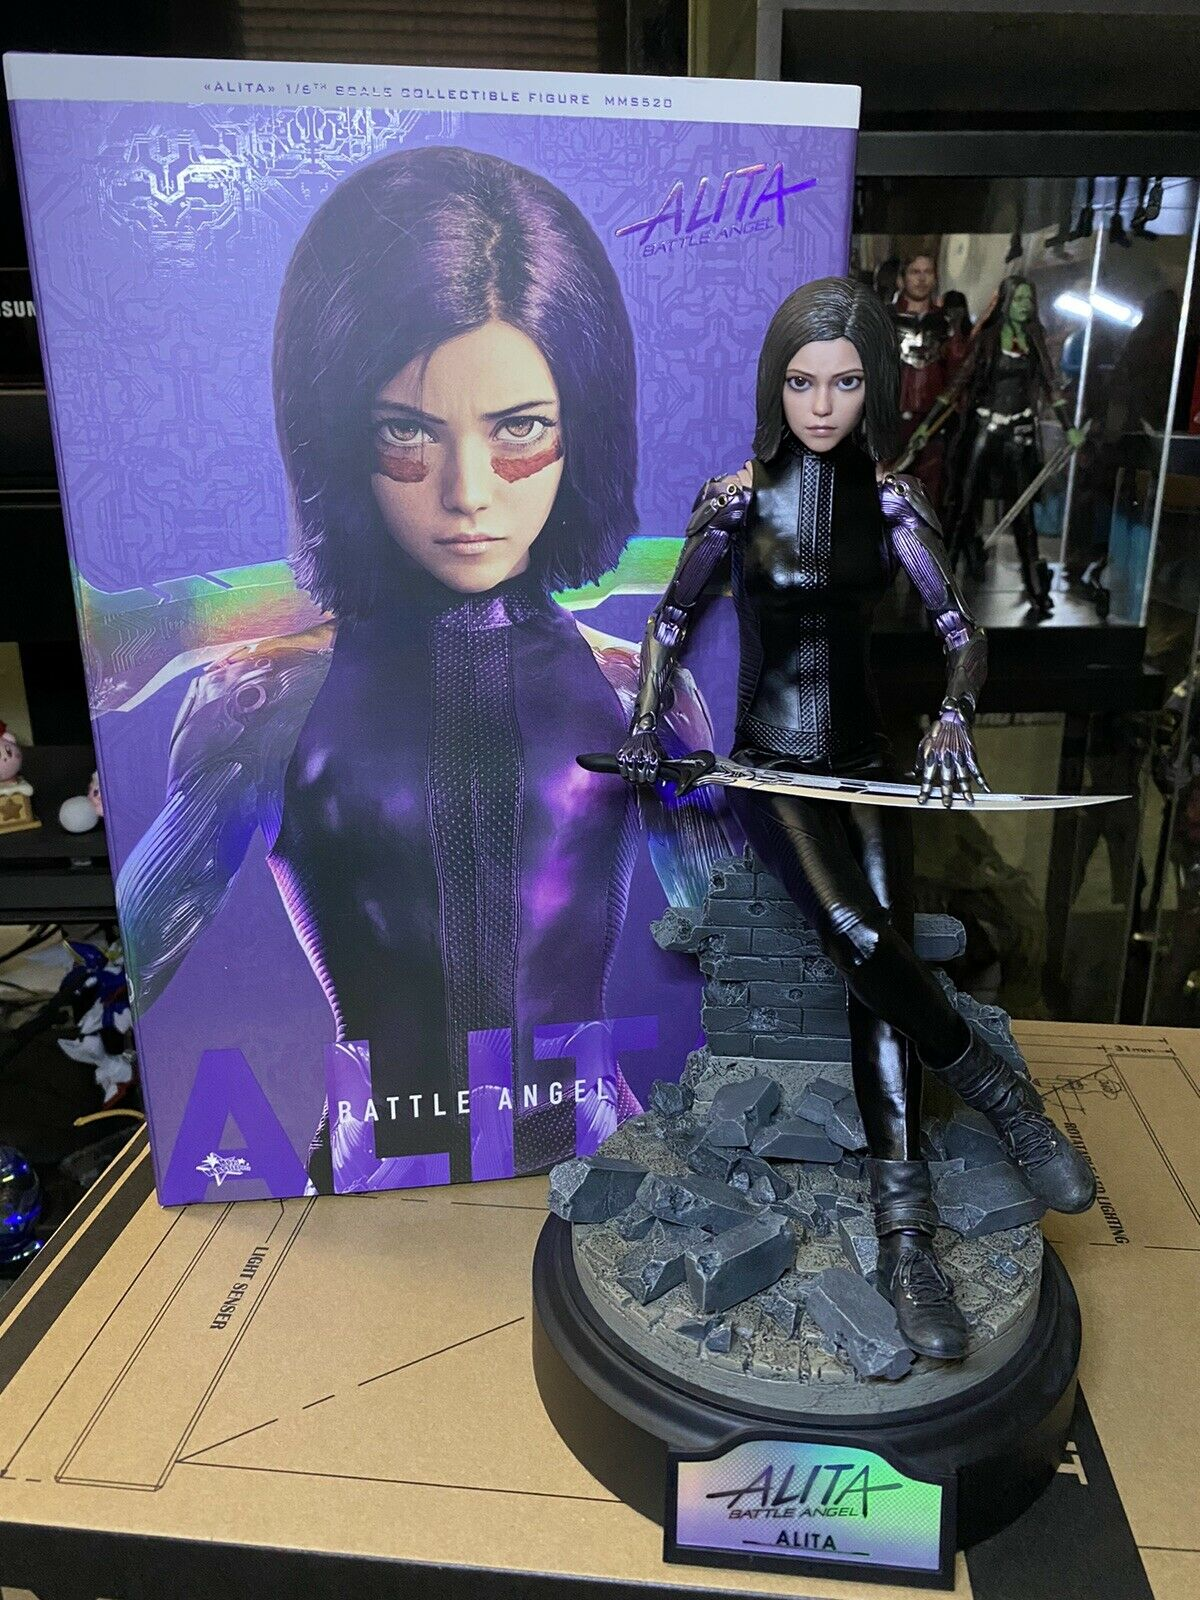 HOT TOYS ALITA BATTLE ANGEL MMS520 1/6 SCALE COLLECTIBLE FIGURE!!! on eBay thumbnail